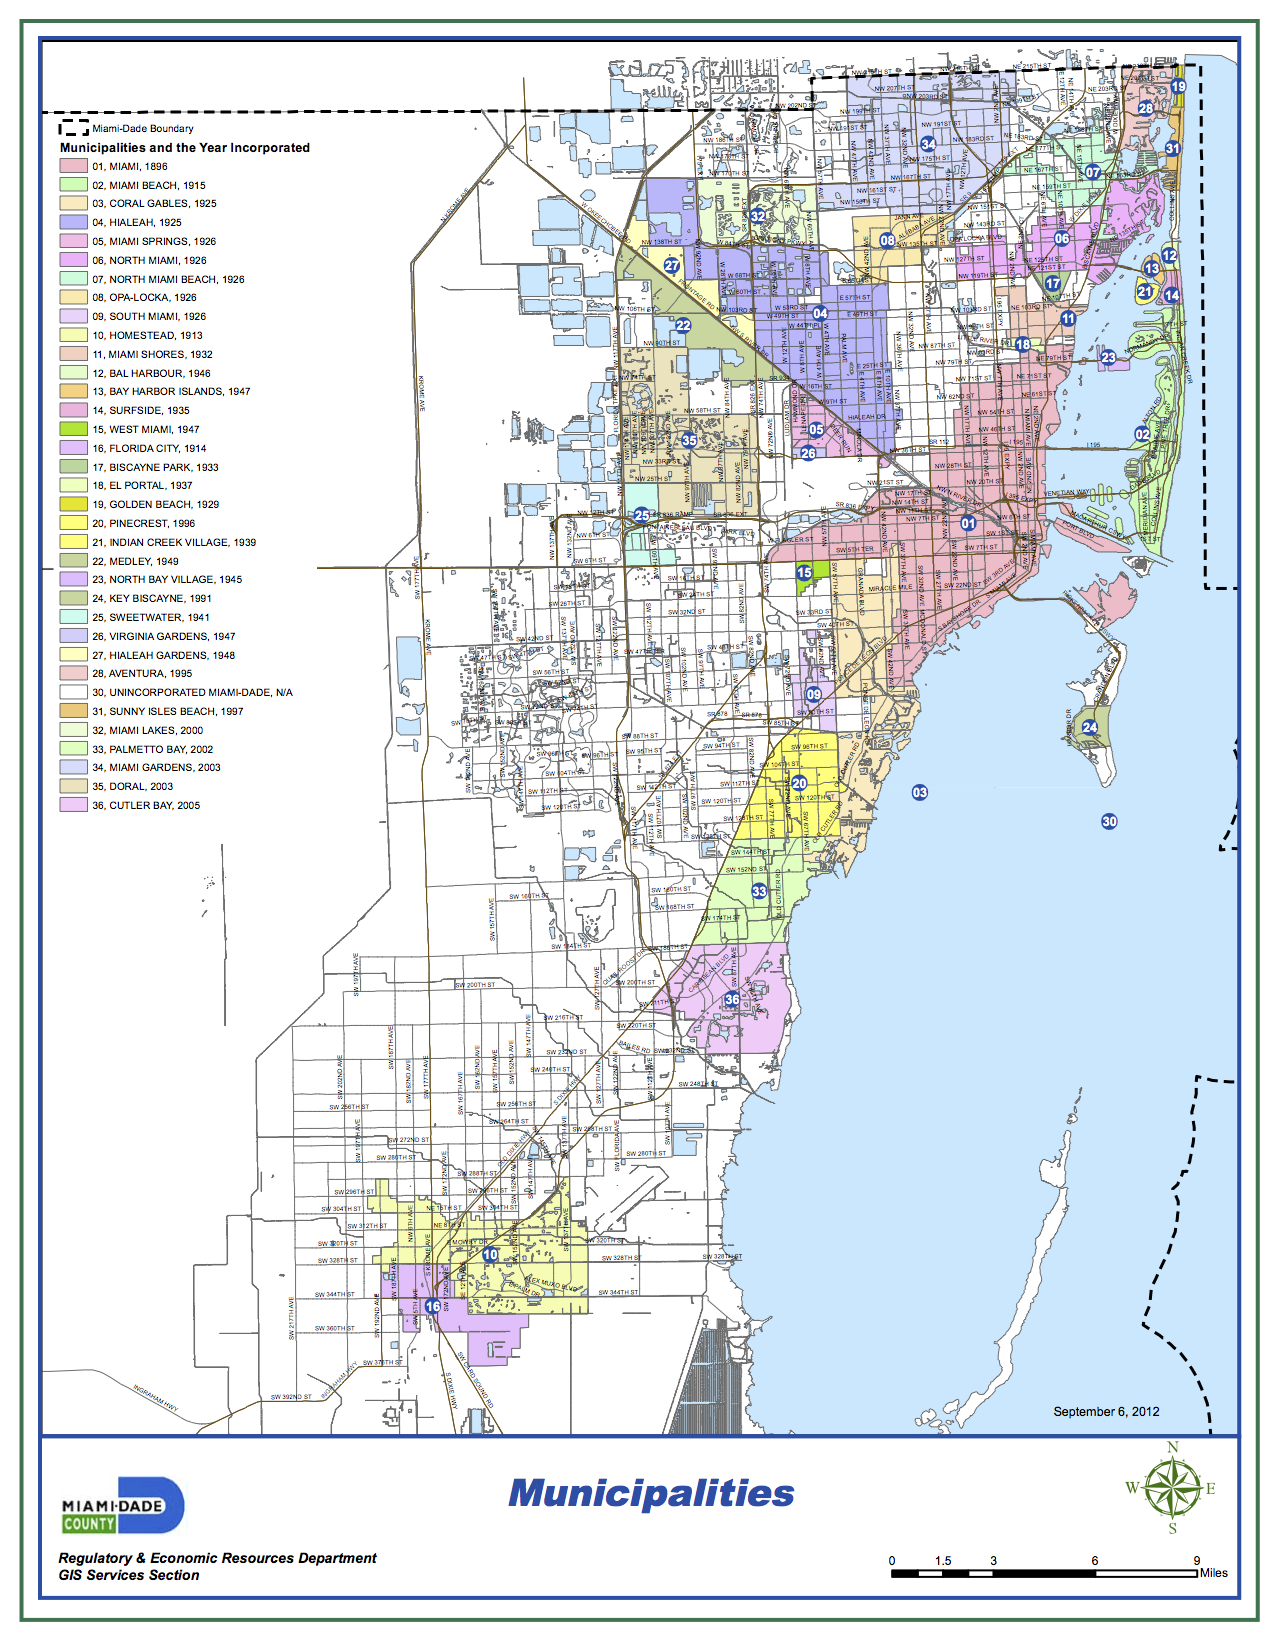 These are Miami-Dade's municipalities. There's 34, and 35 if you include the unincorporated region as a municipality. (The county map skips the number 29 for any of you confused map nerds.)